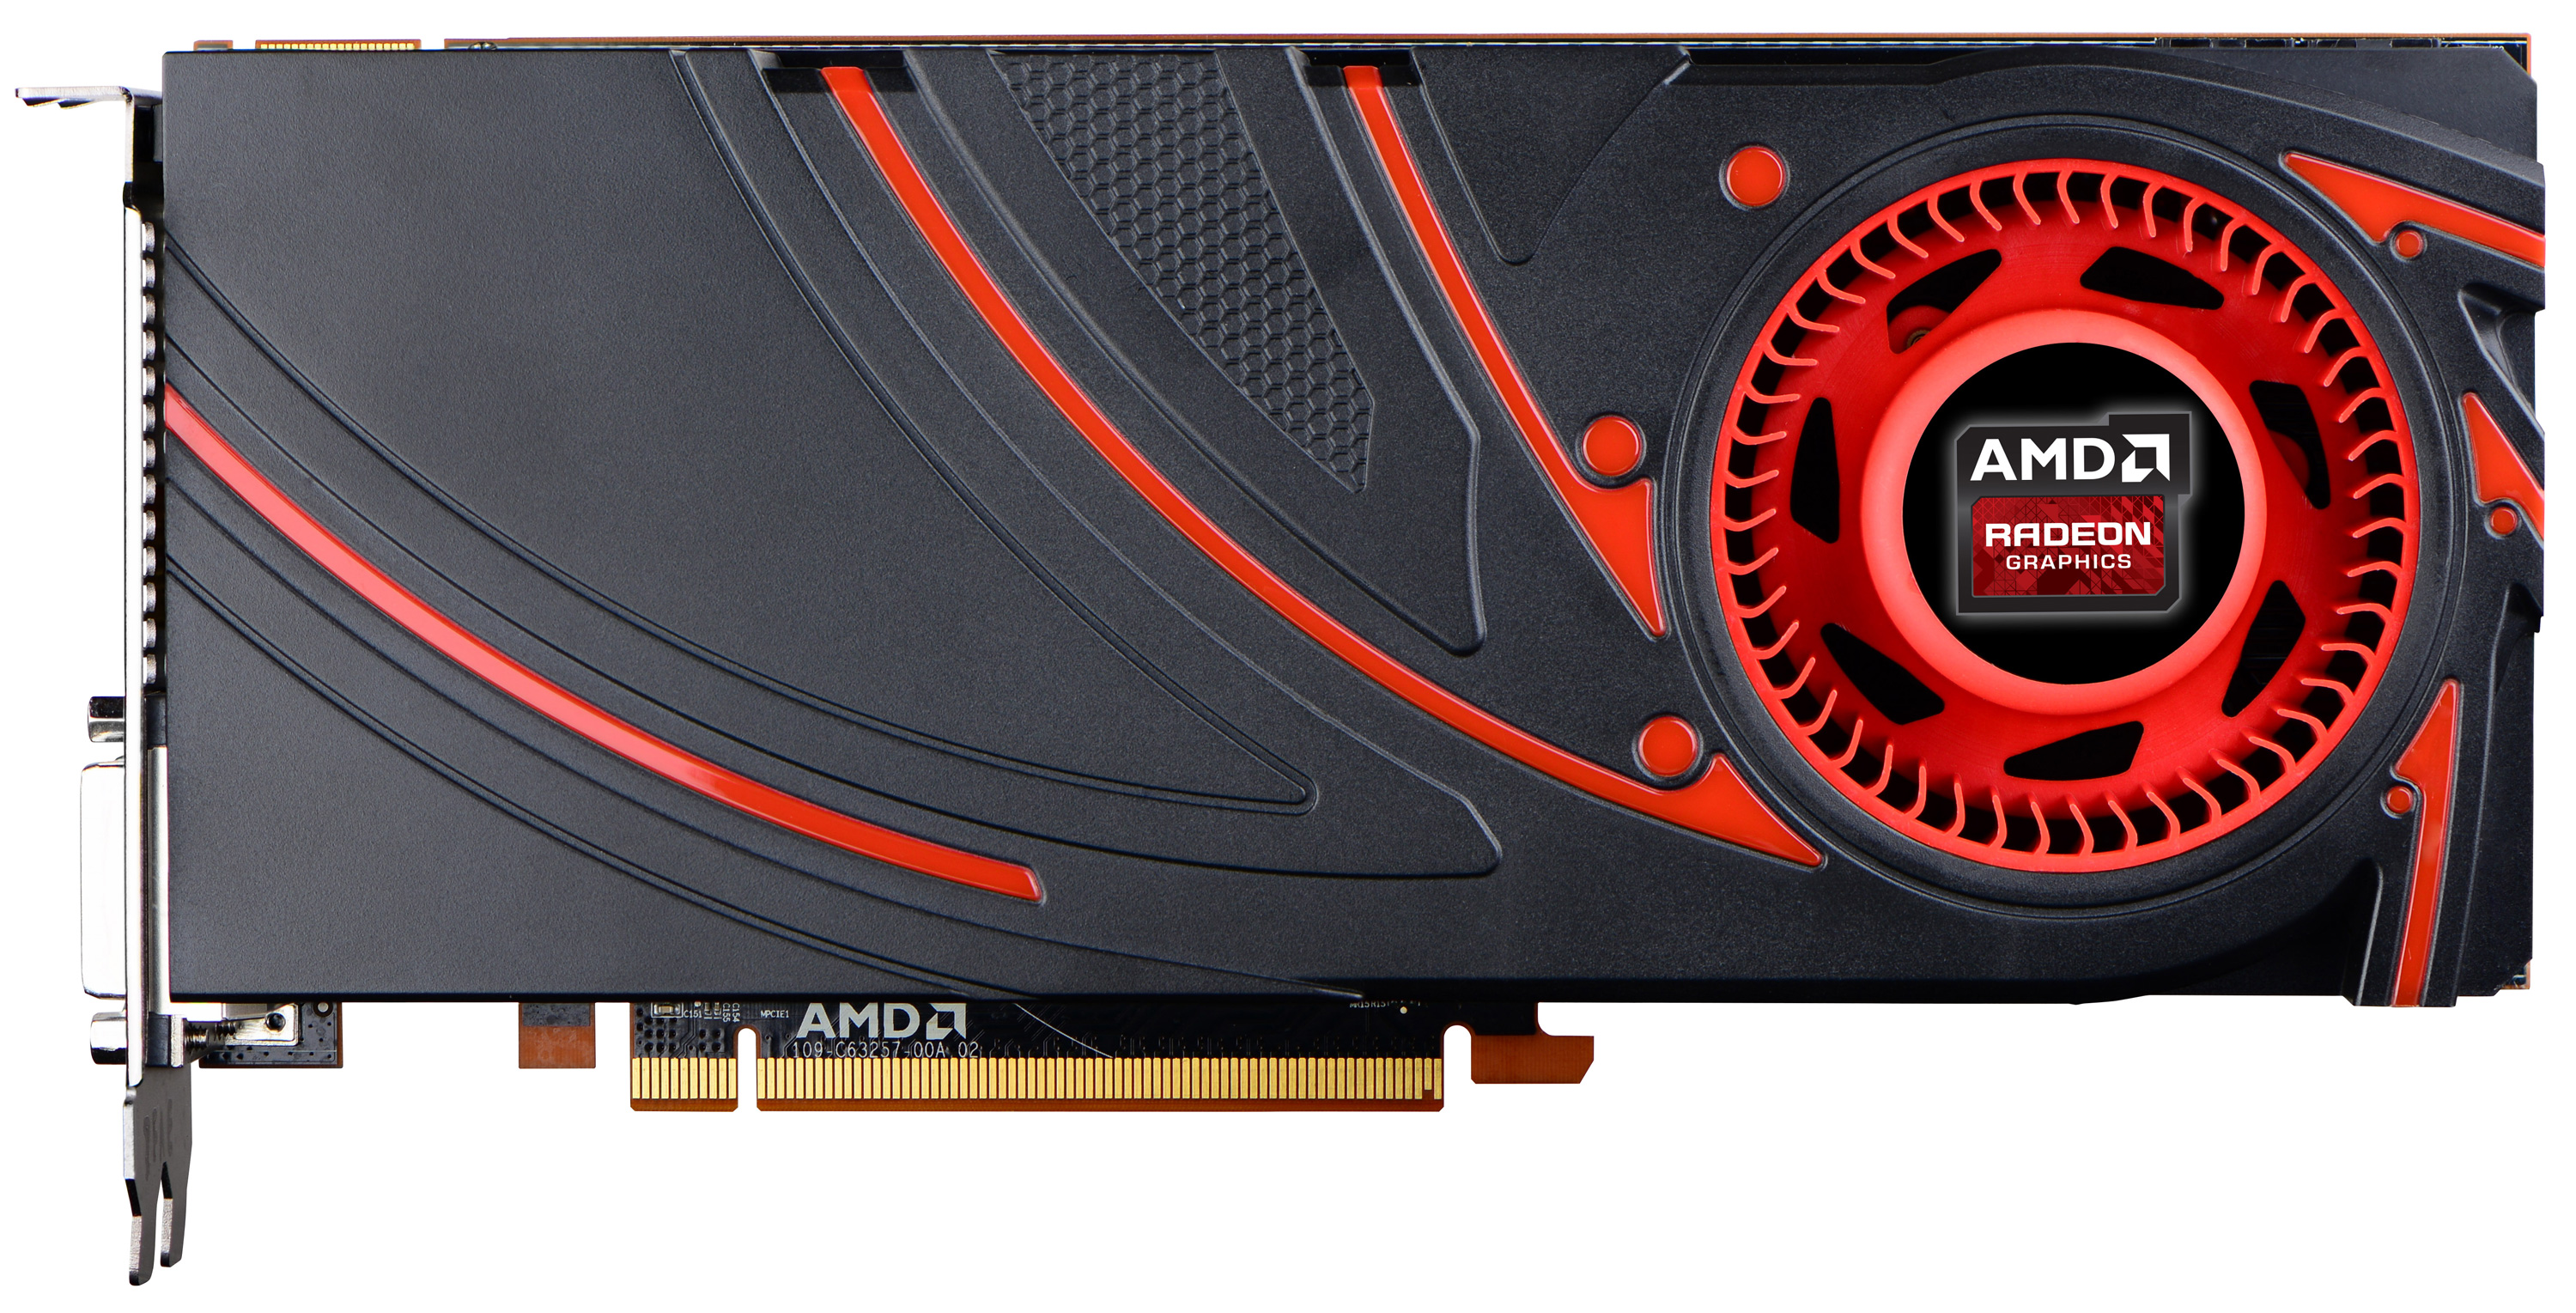 The AMD Radeon R9 270X & R9 270 Review: Feat  Asus & HIS